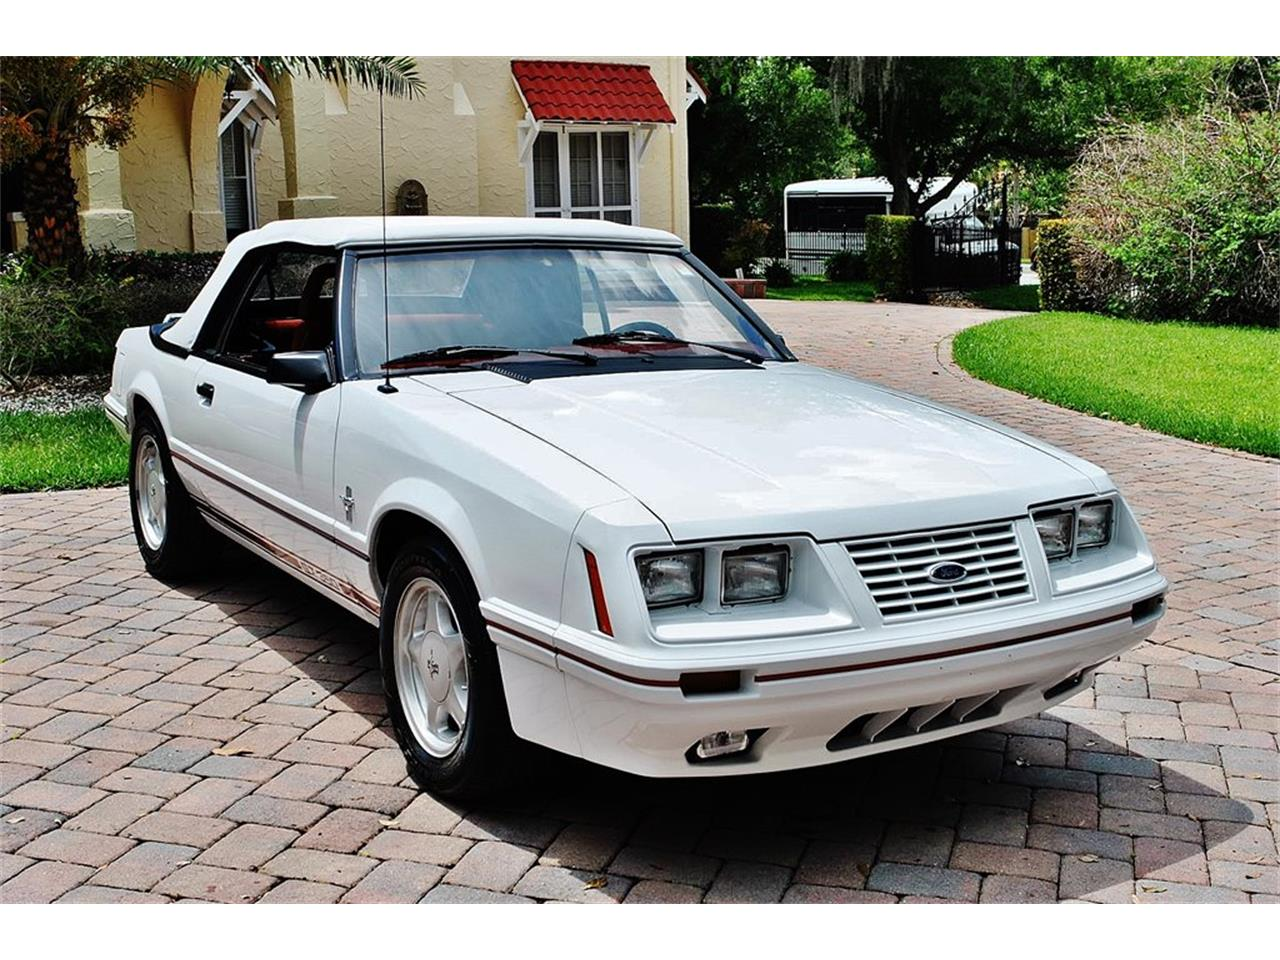 Large picture of 84 mustang nhgi